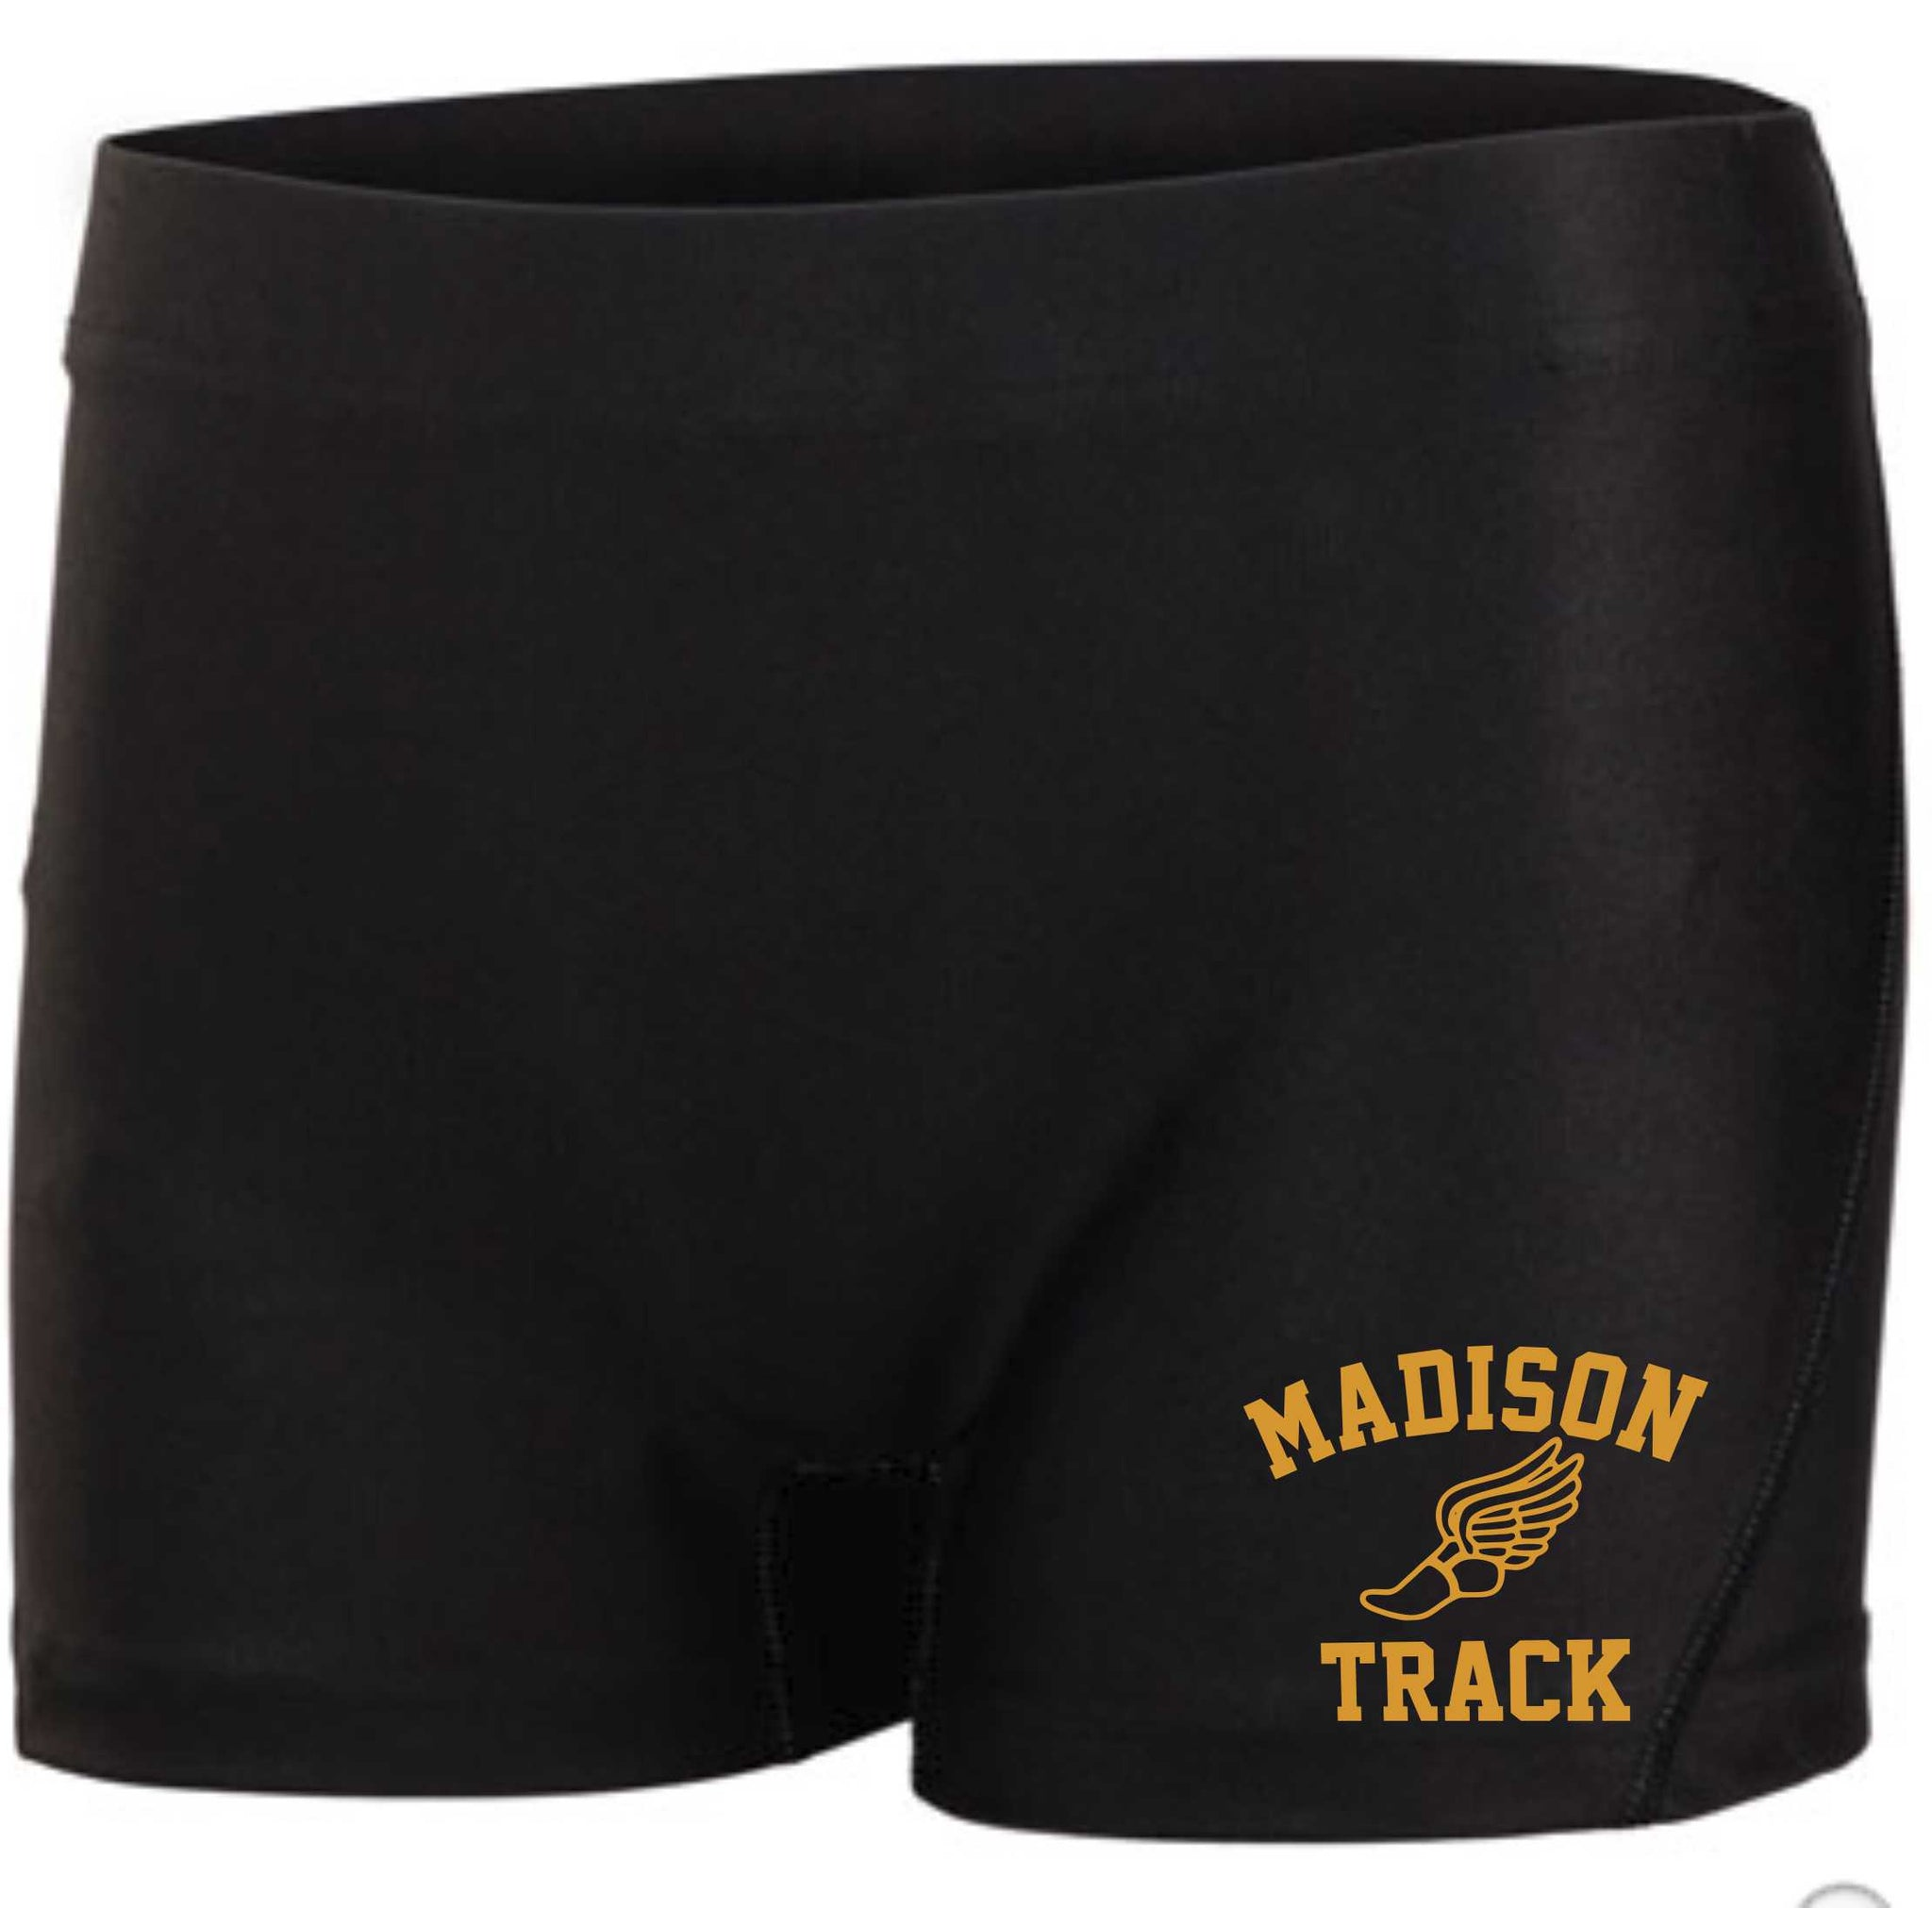 Womens James Madison Black Track Short